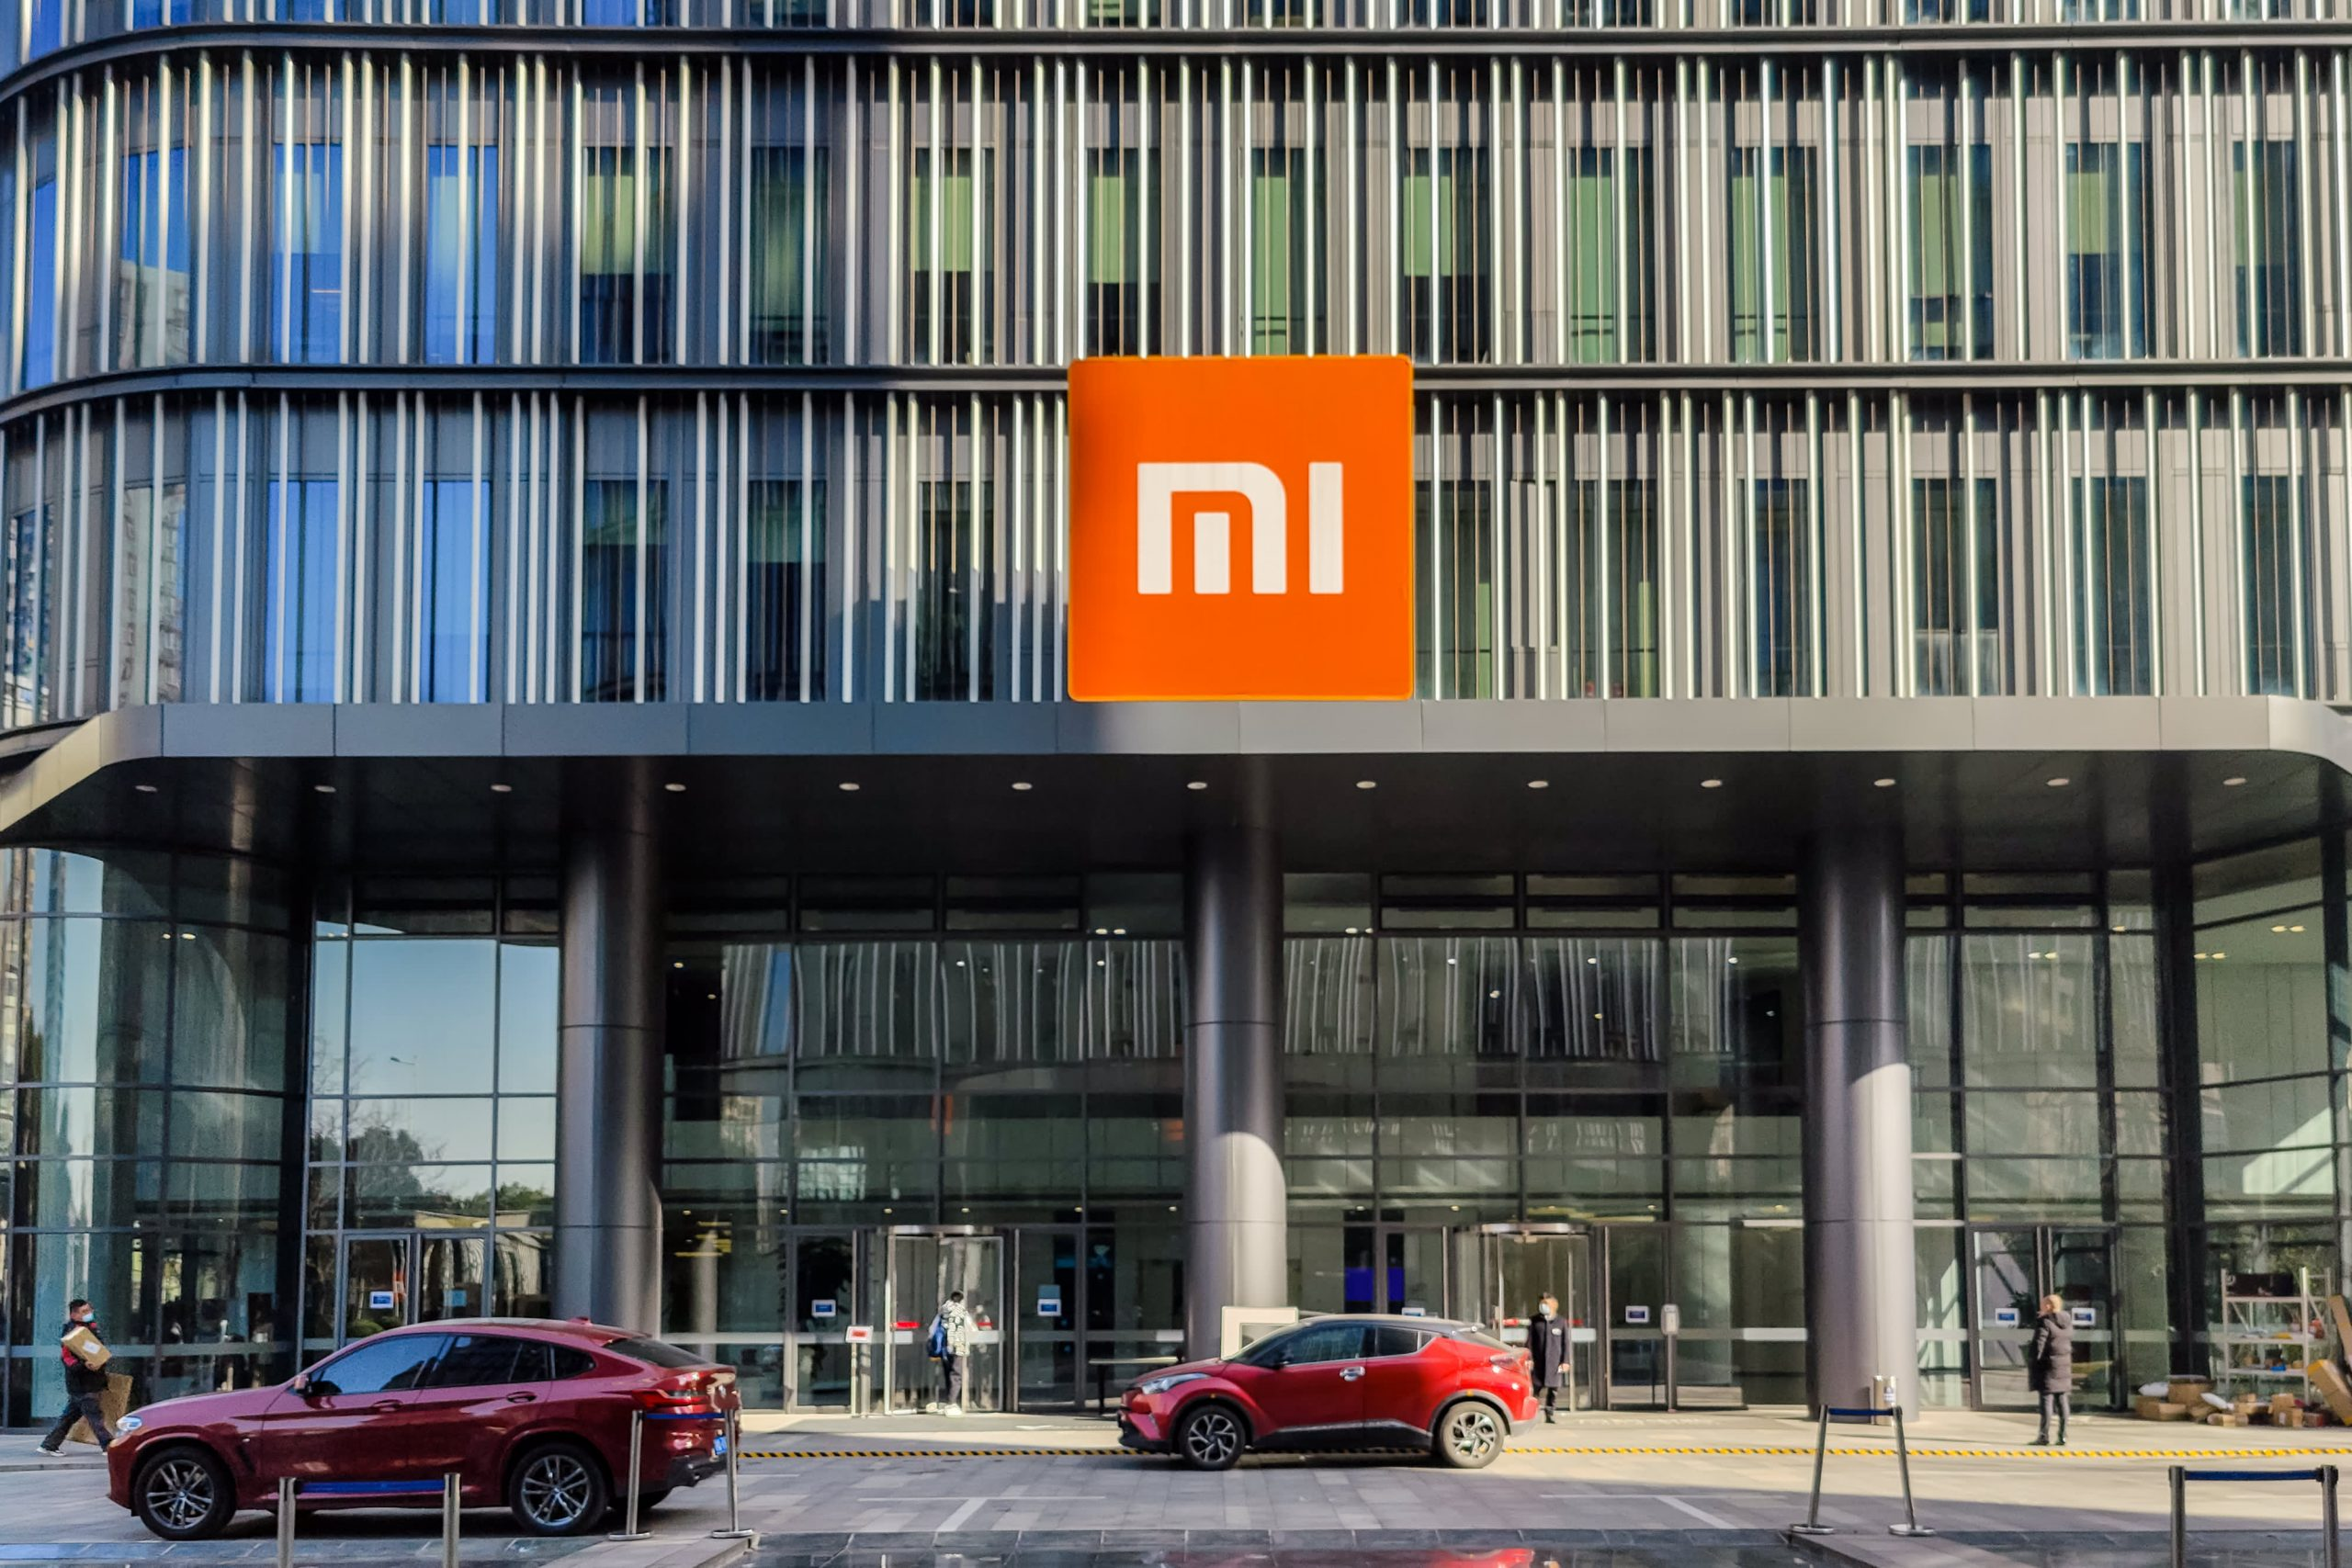 China's Xiaomi to launch electric car business and invest $10 billion